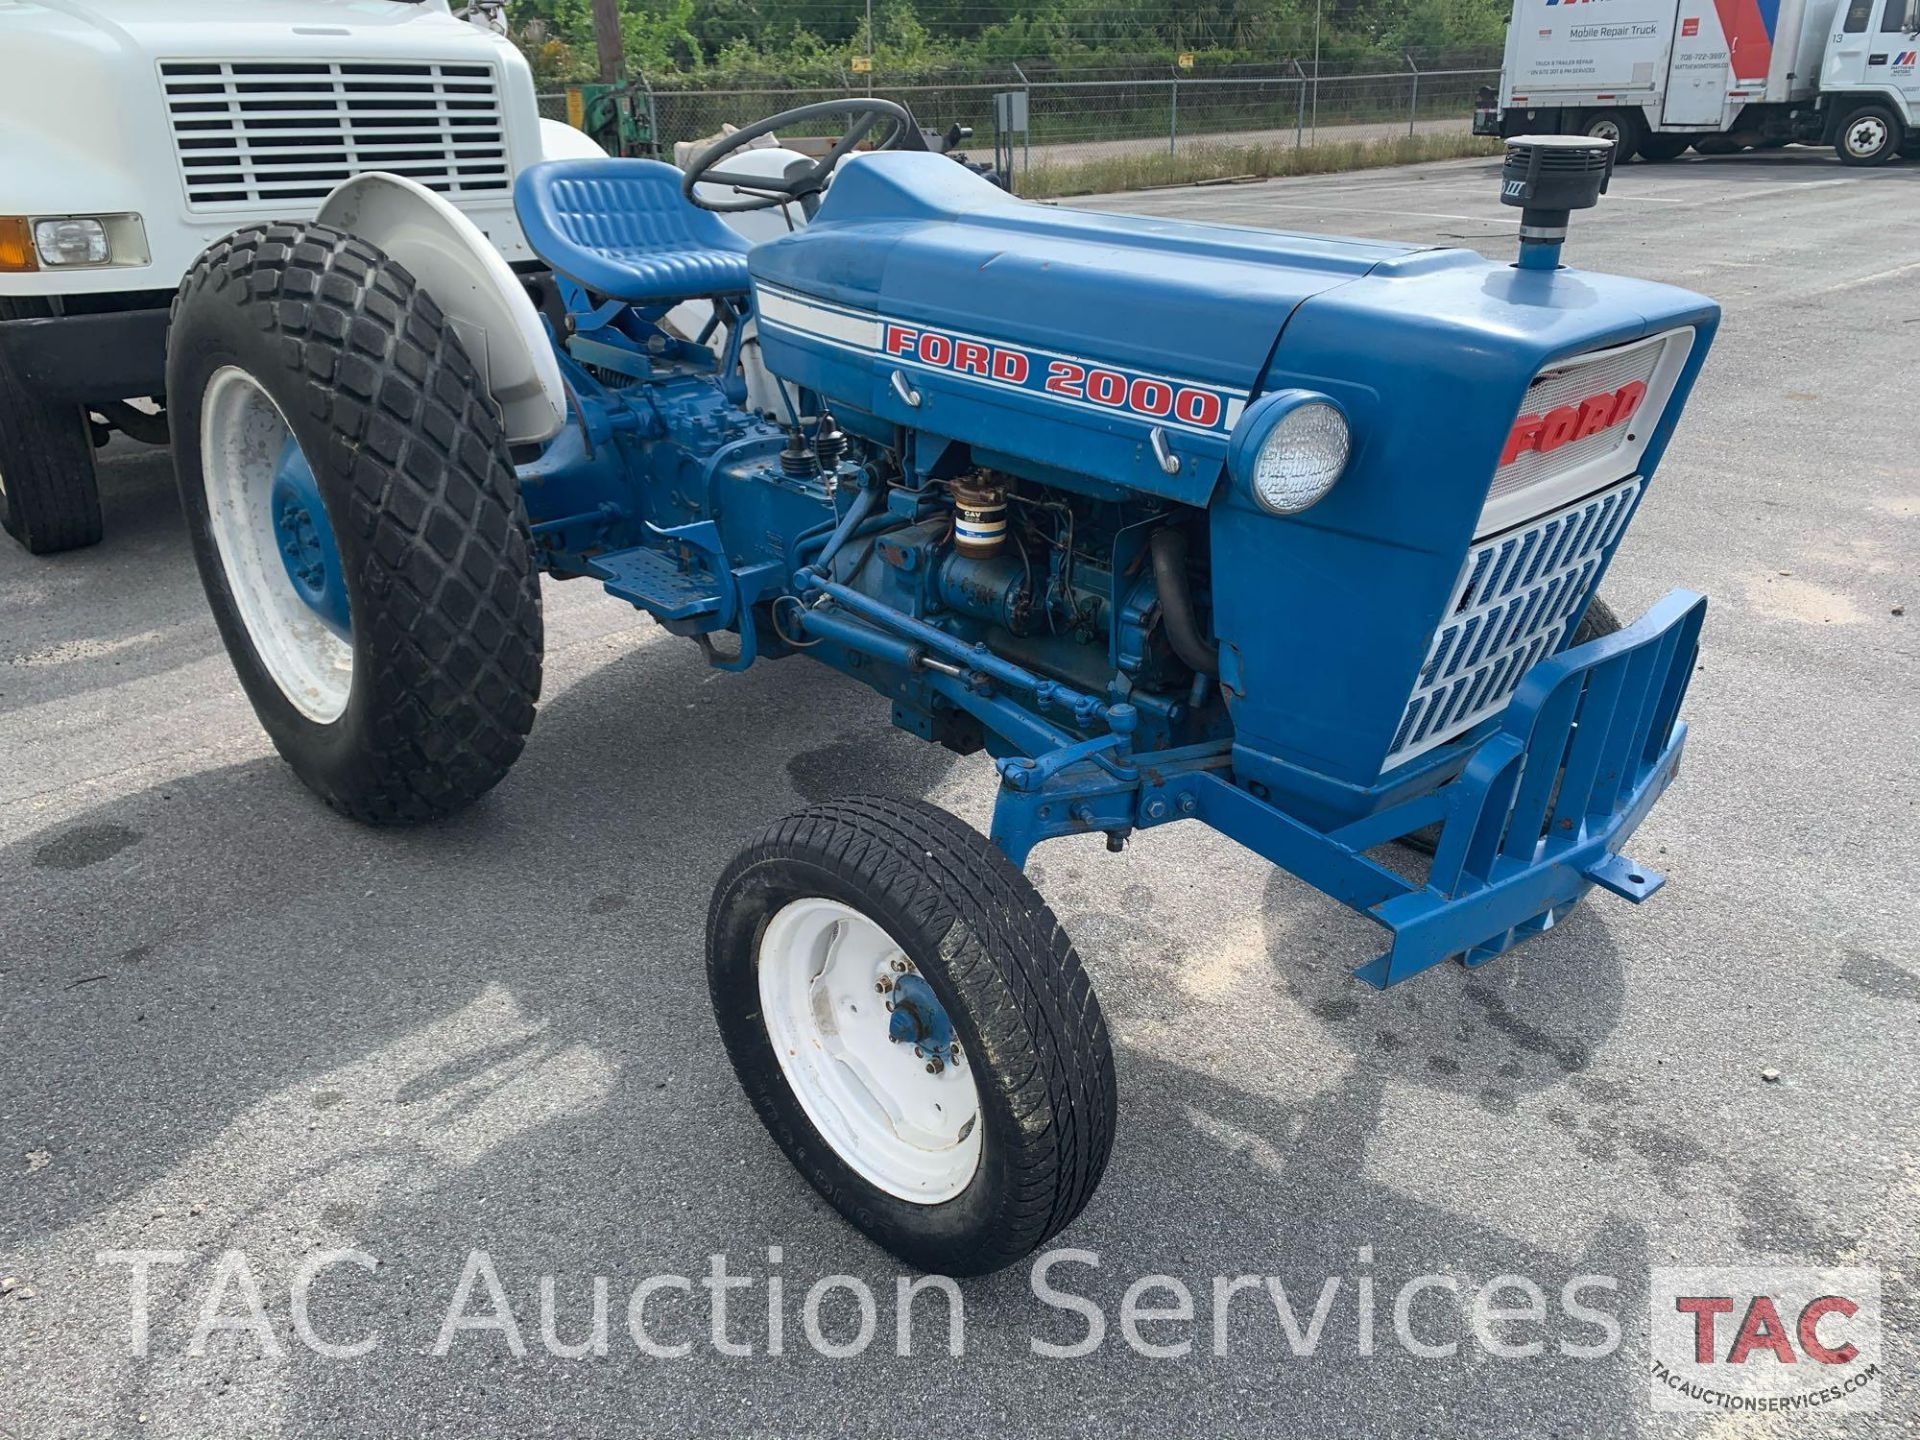 Ford 2000 Farm Tractor - Image 7 of 28